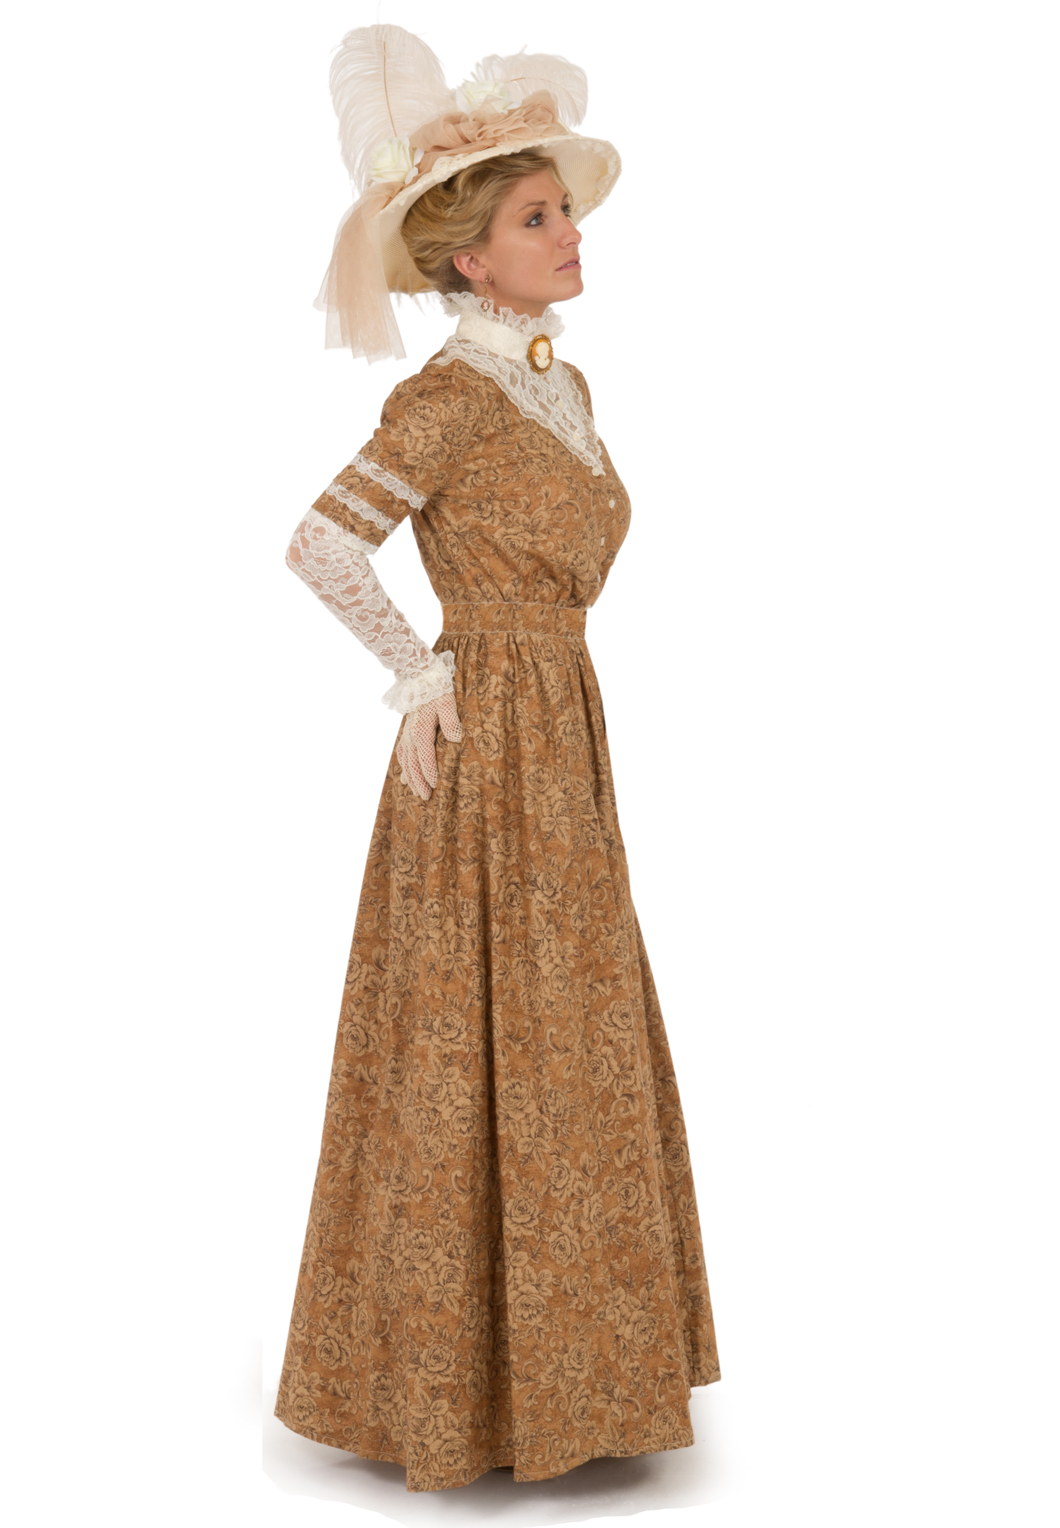 6a881f1c575c46 Edwardian Dresses from Recollections (Page 1 of 2)